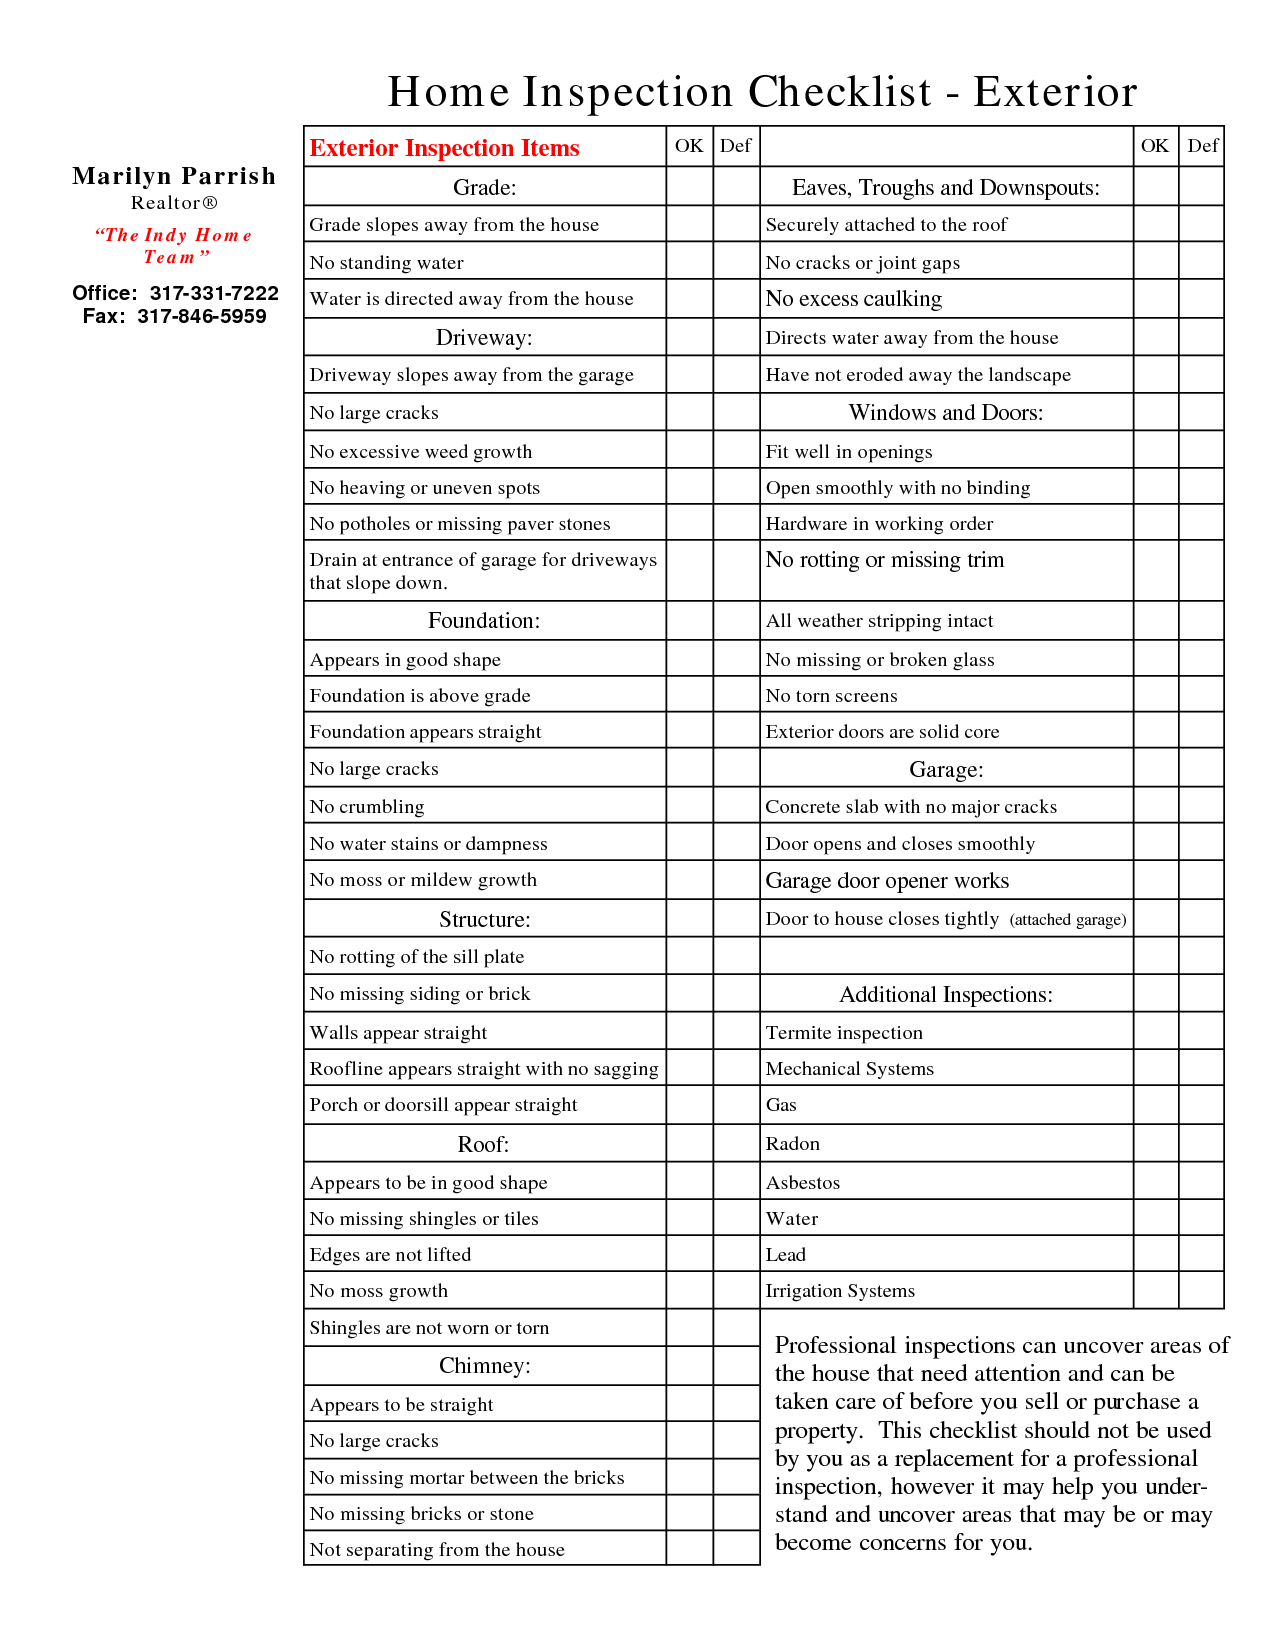 Home Inspection Checklist  To Do List Template  Real Estate